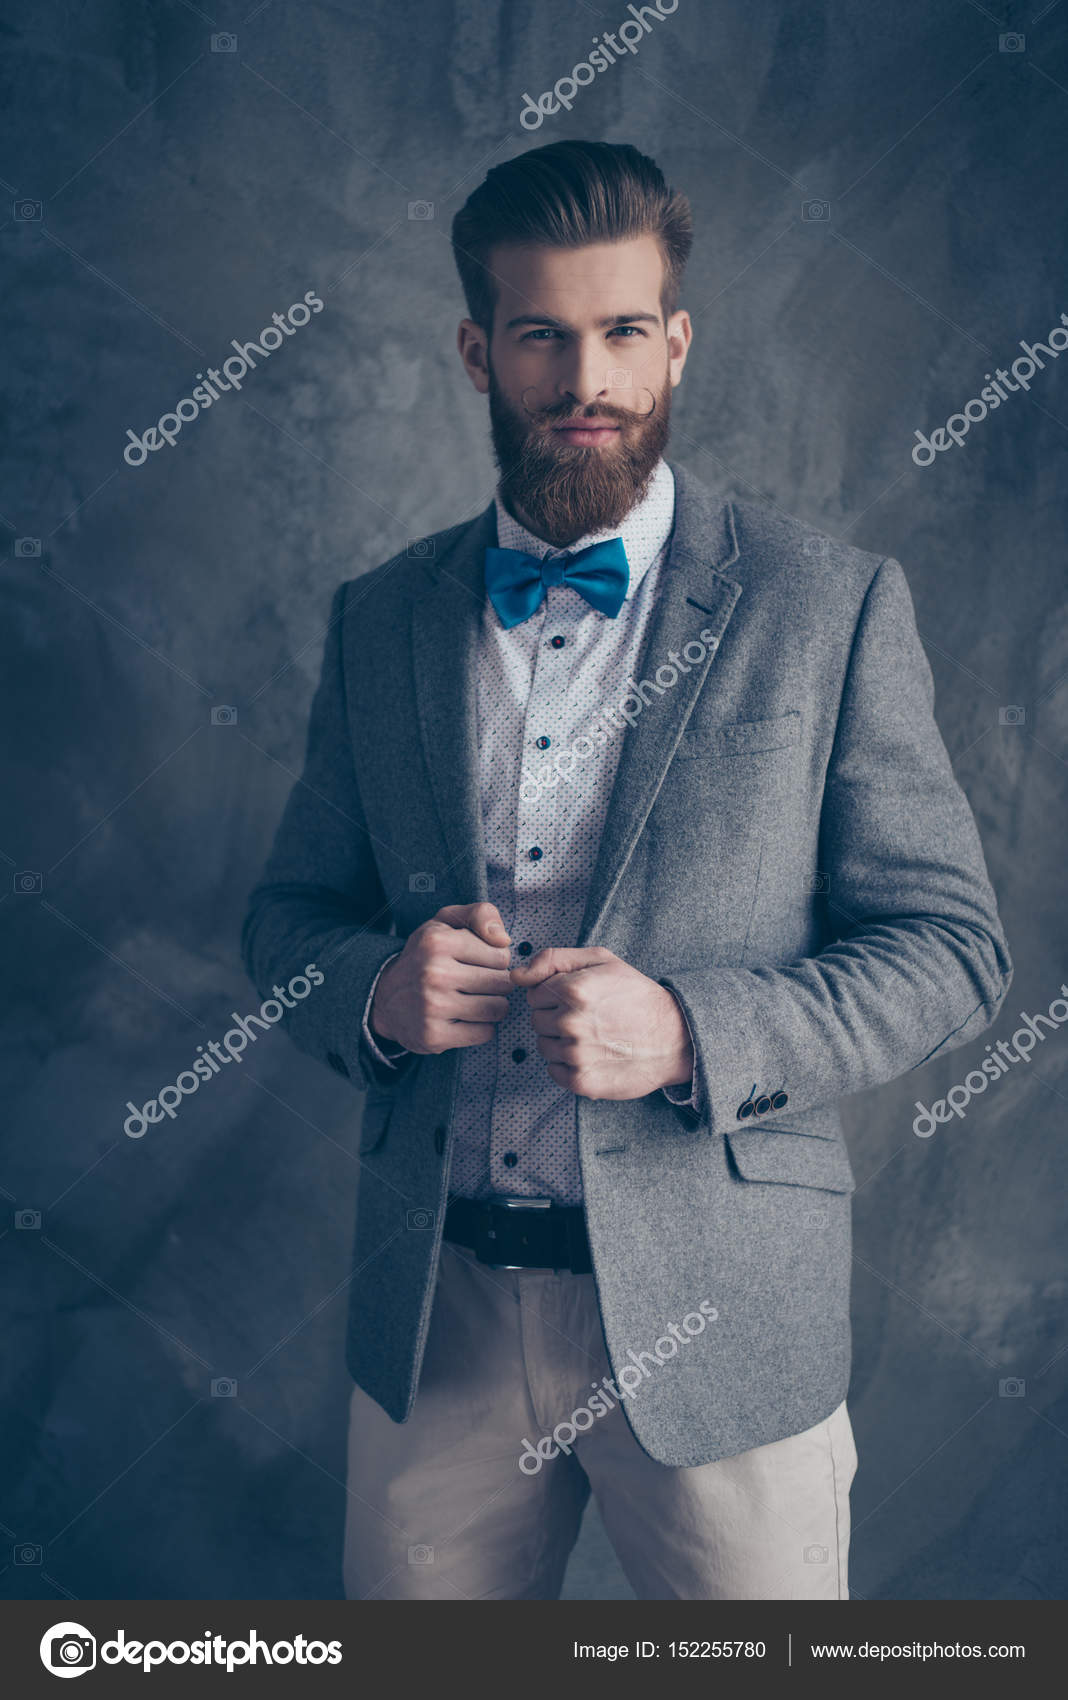 3904da1c1cf0 Confident stylish man with red beard and blue bow tie on gray ba– stock  image